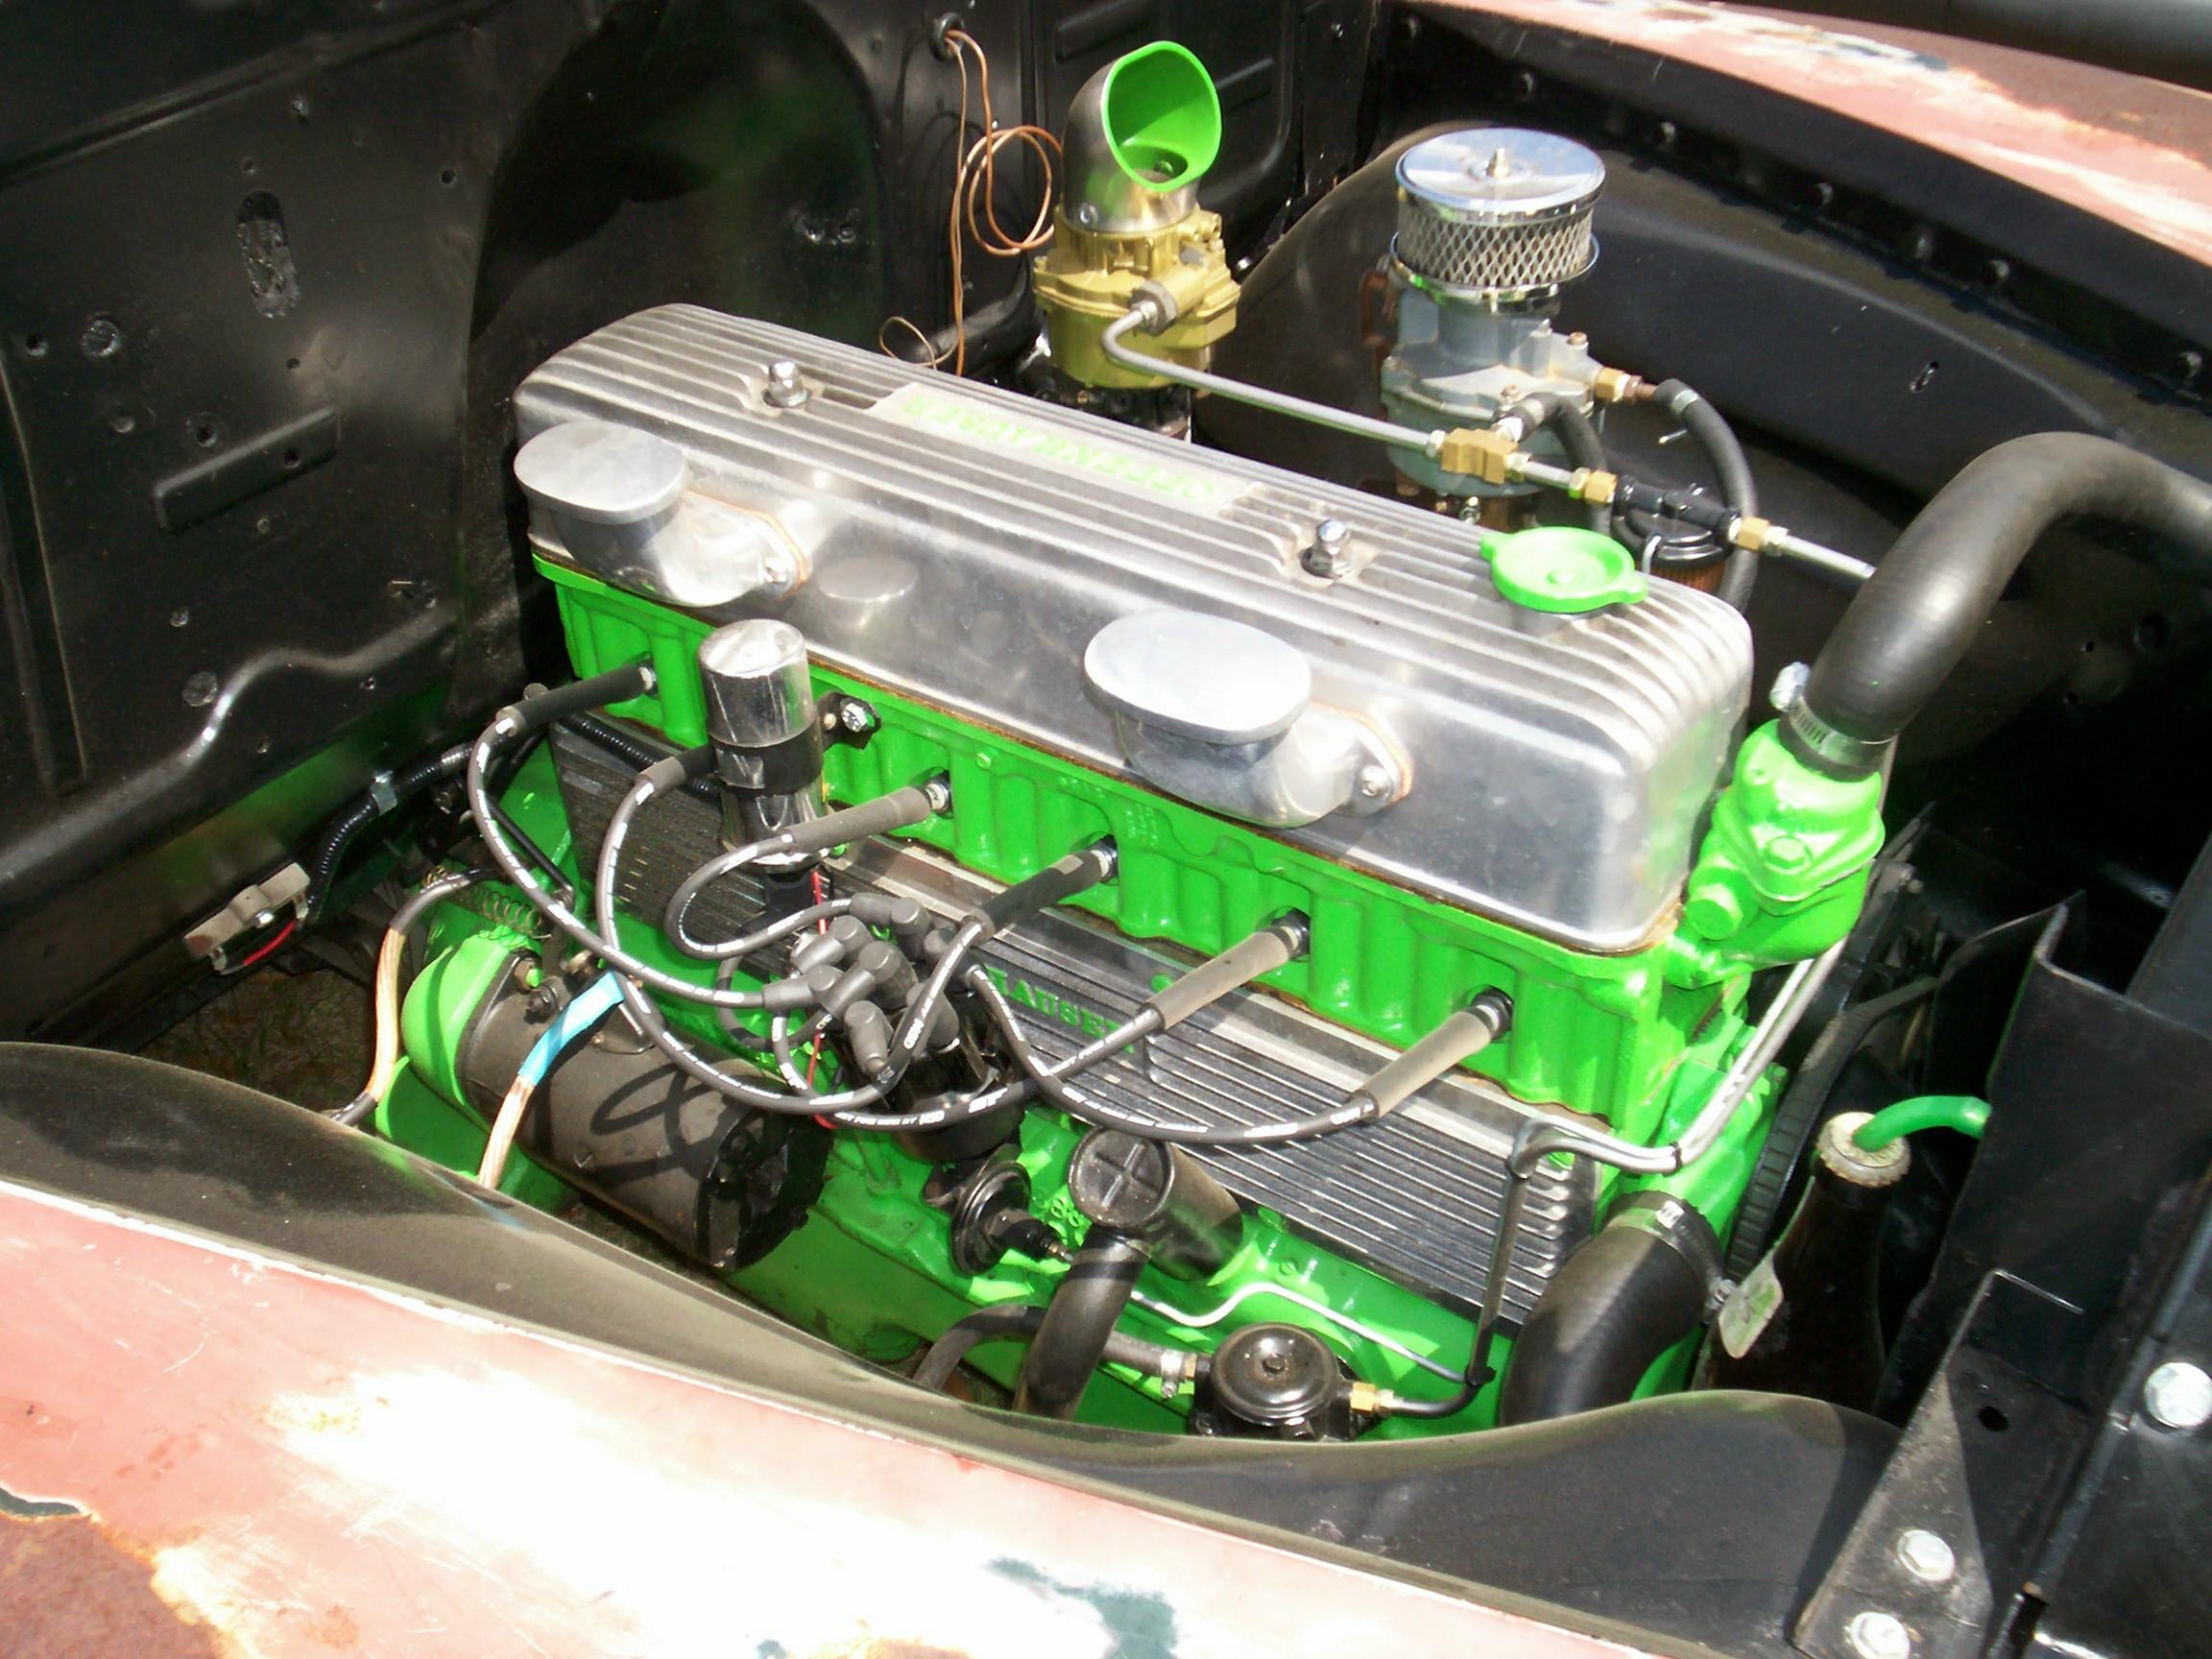 235 Inline 6 Crate Engines Related Keywords & Suggestions - 235